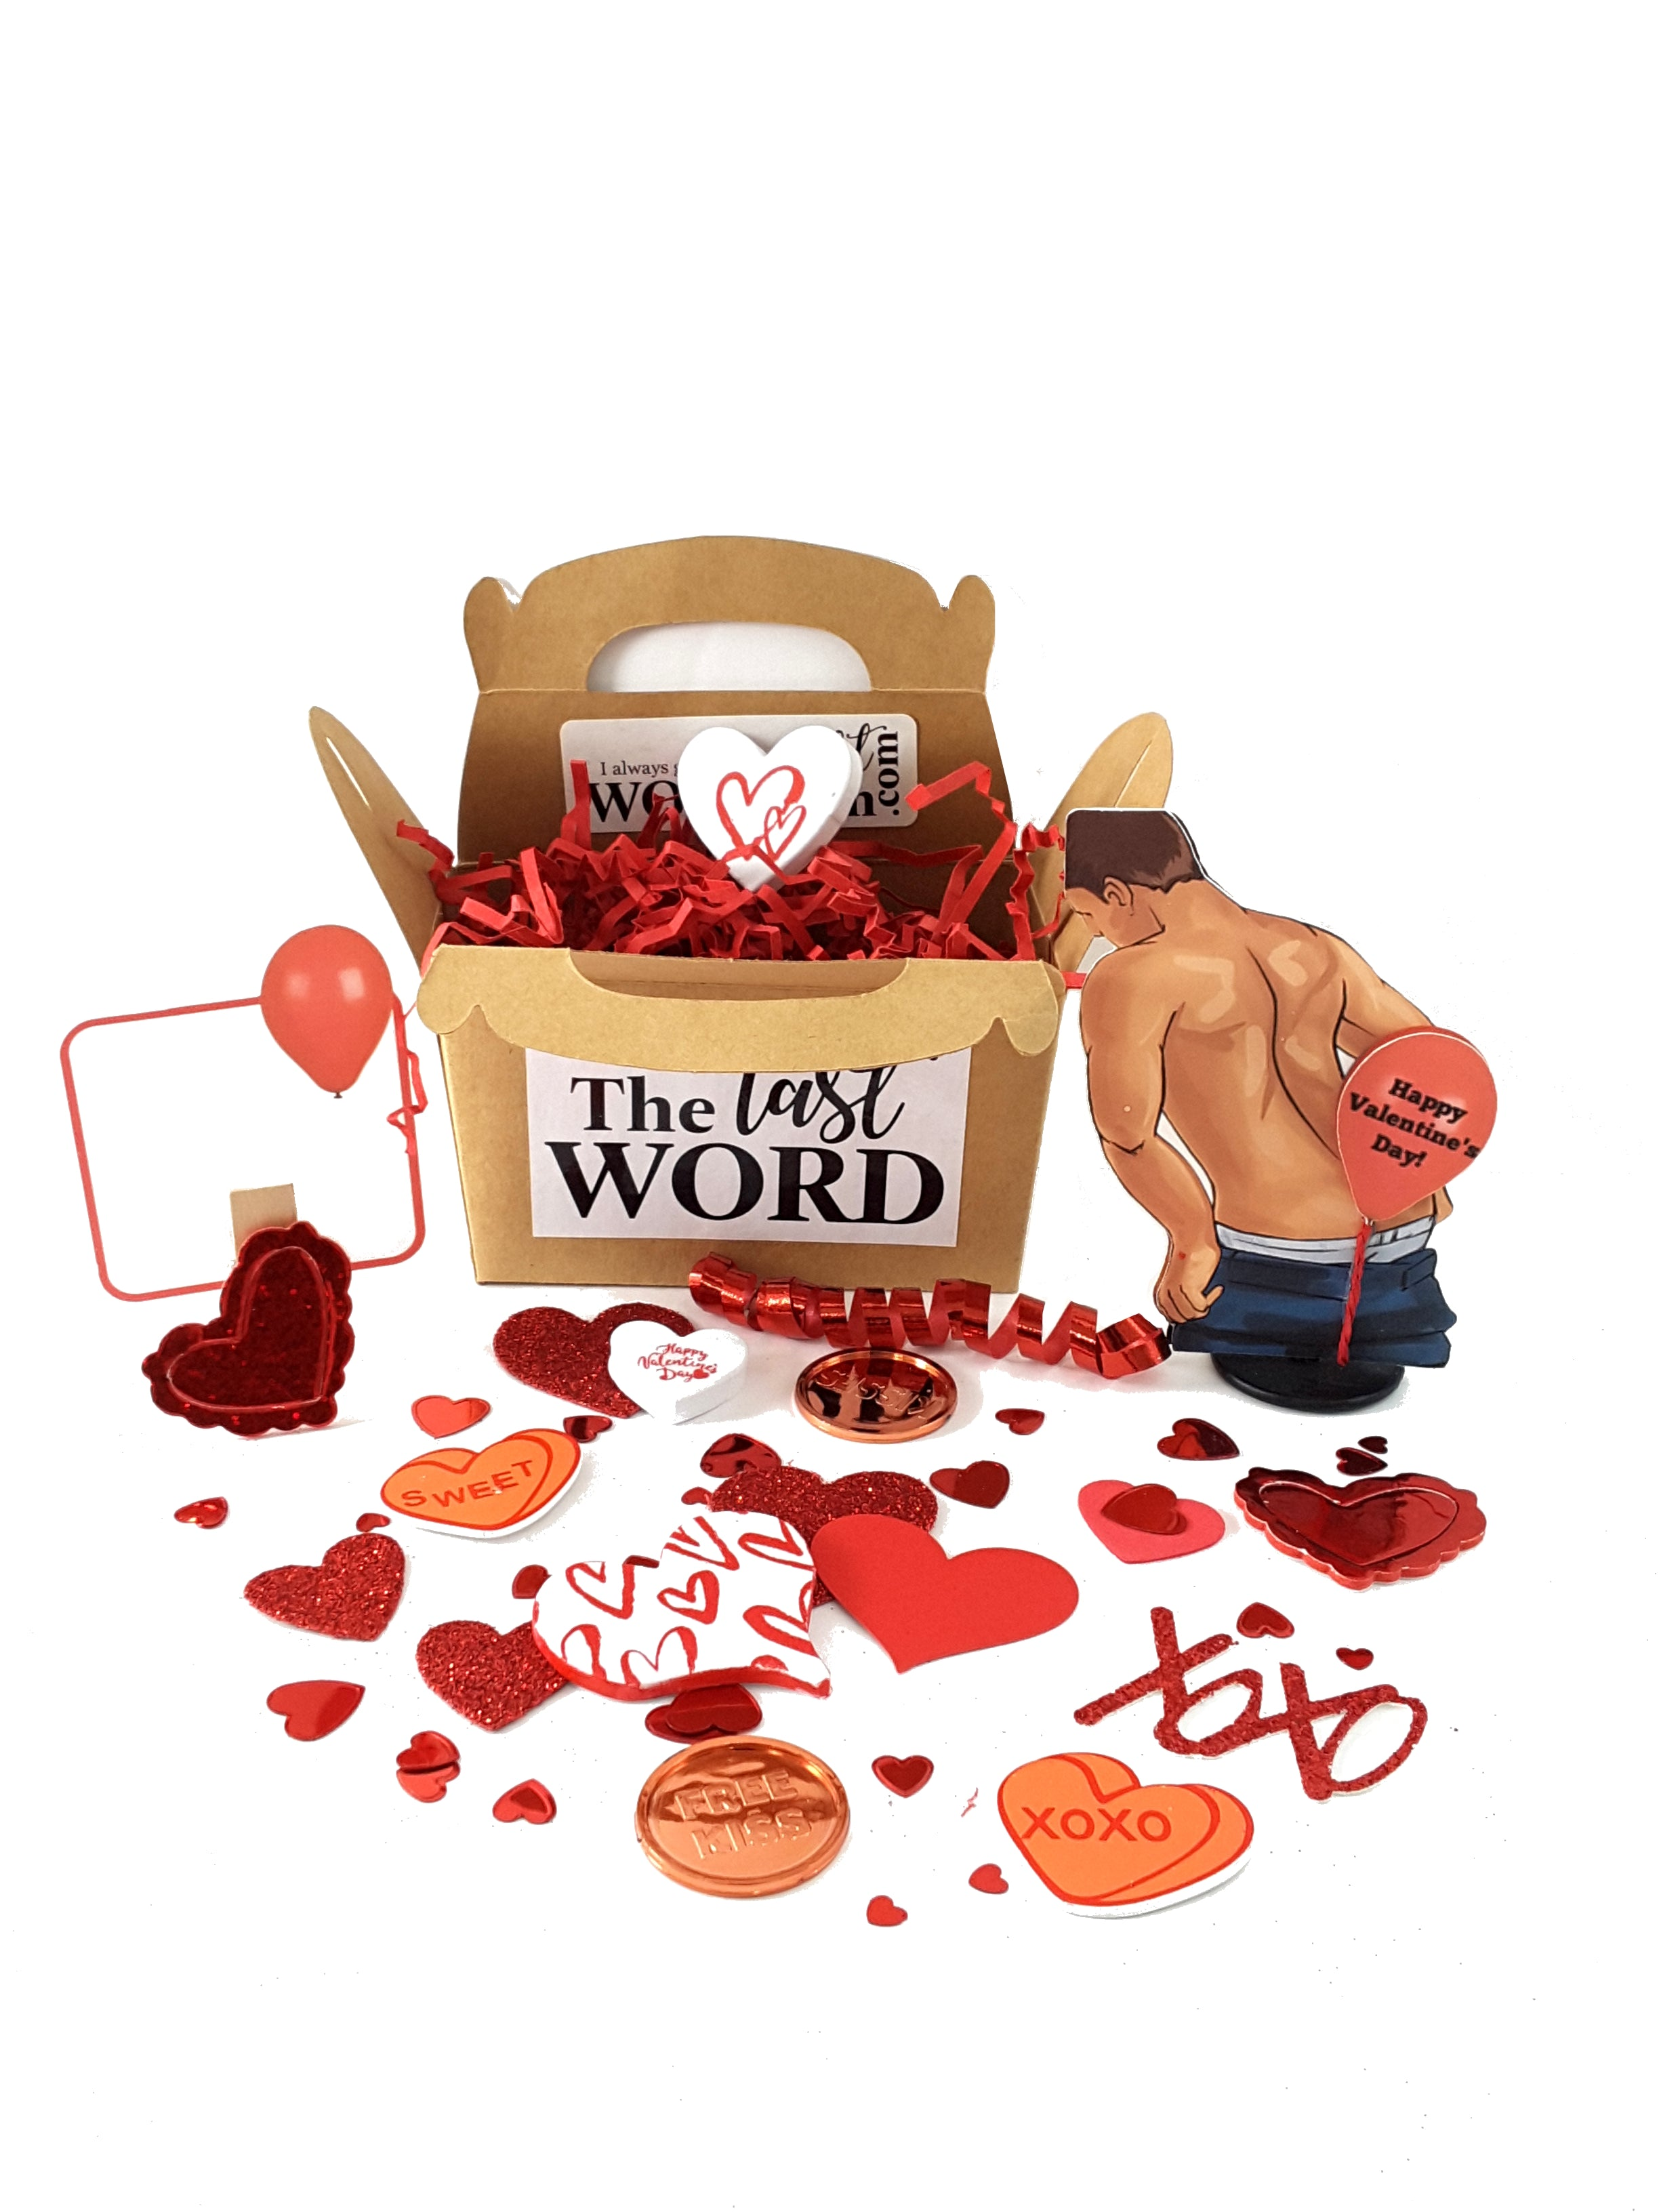 Valentine's Day 3D Card with Balloon Fart Man - The Last Word Bish